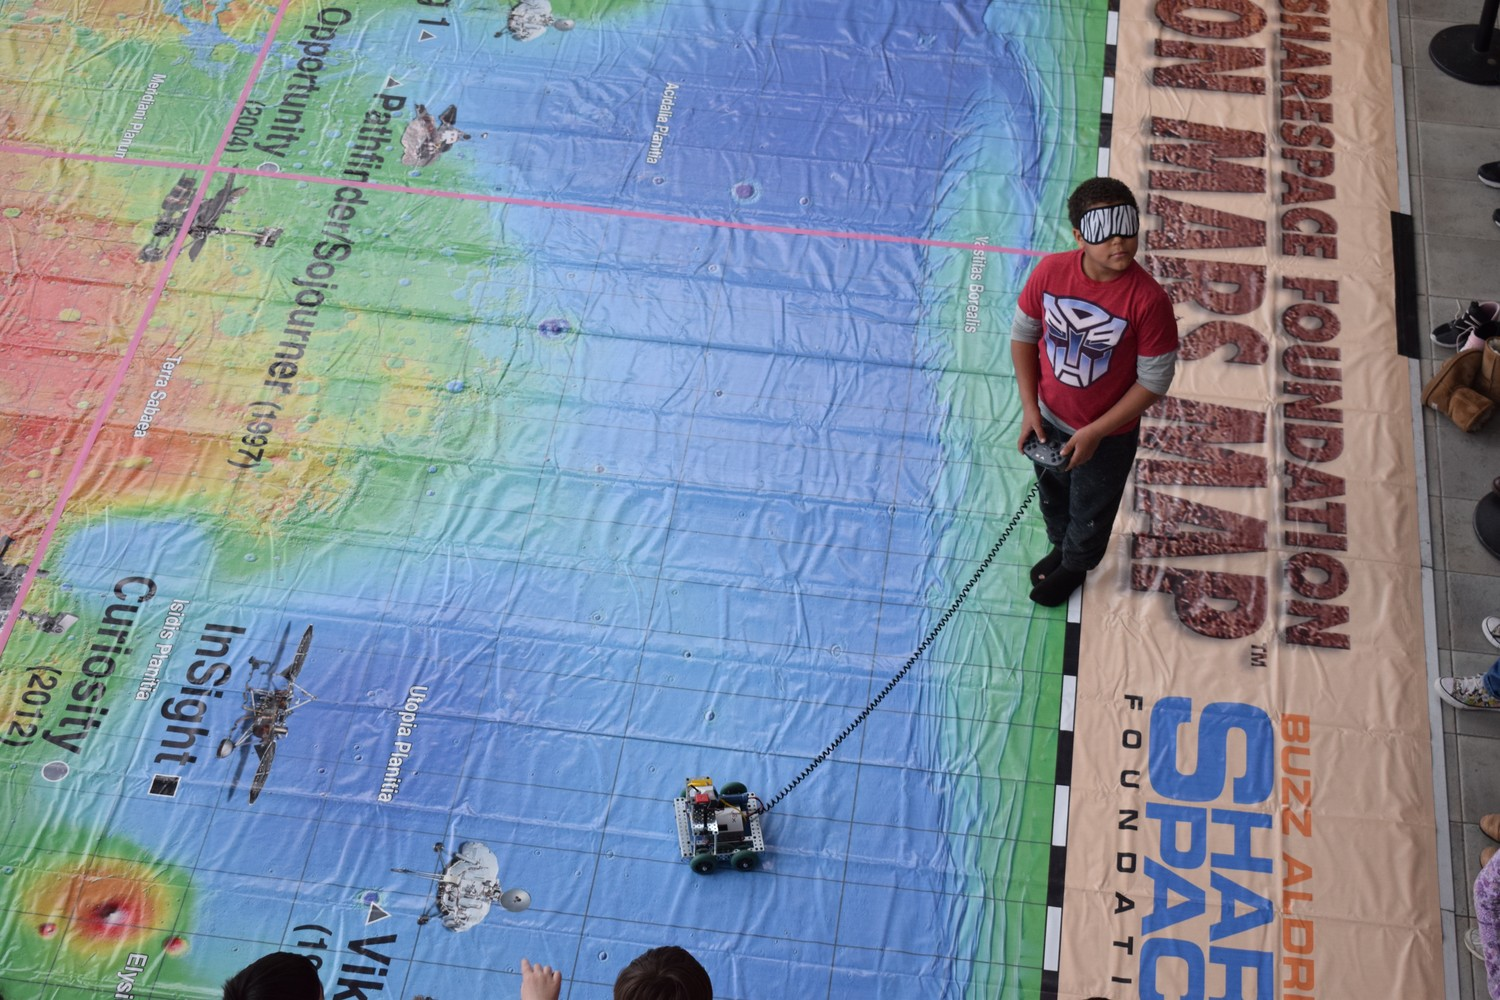 Student tries his 'hand' at handling a miniature rovers on a giant 25-foot x 25-foot vinyl Mars map provided by the Buzz Aldrin Share Space Foundation.